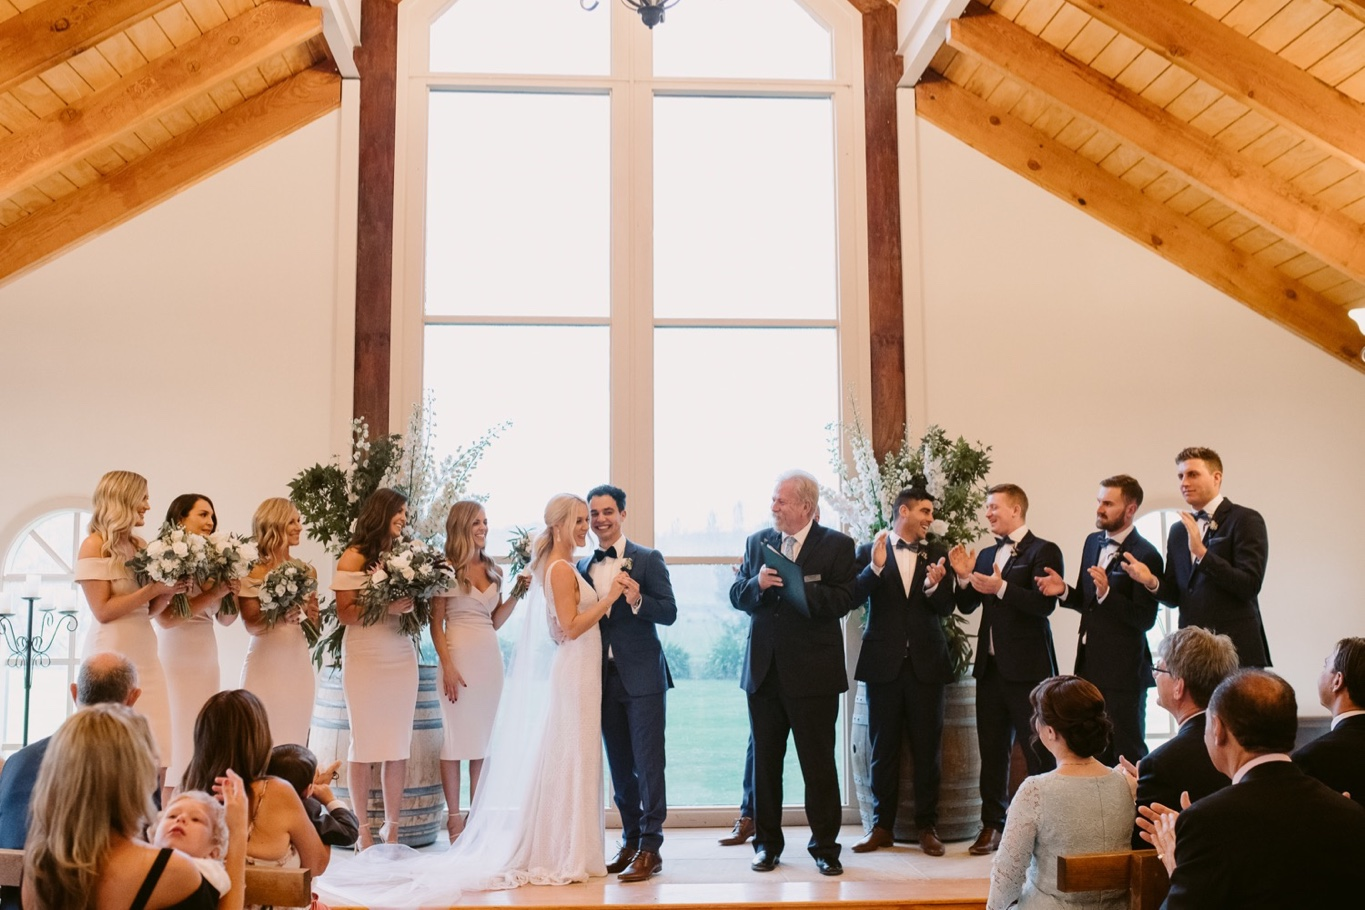 Immerse Yarra Valley Winery Wedding Photography58.jpg